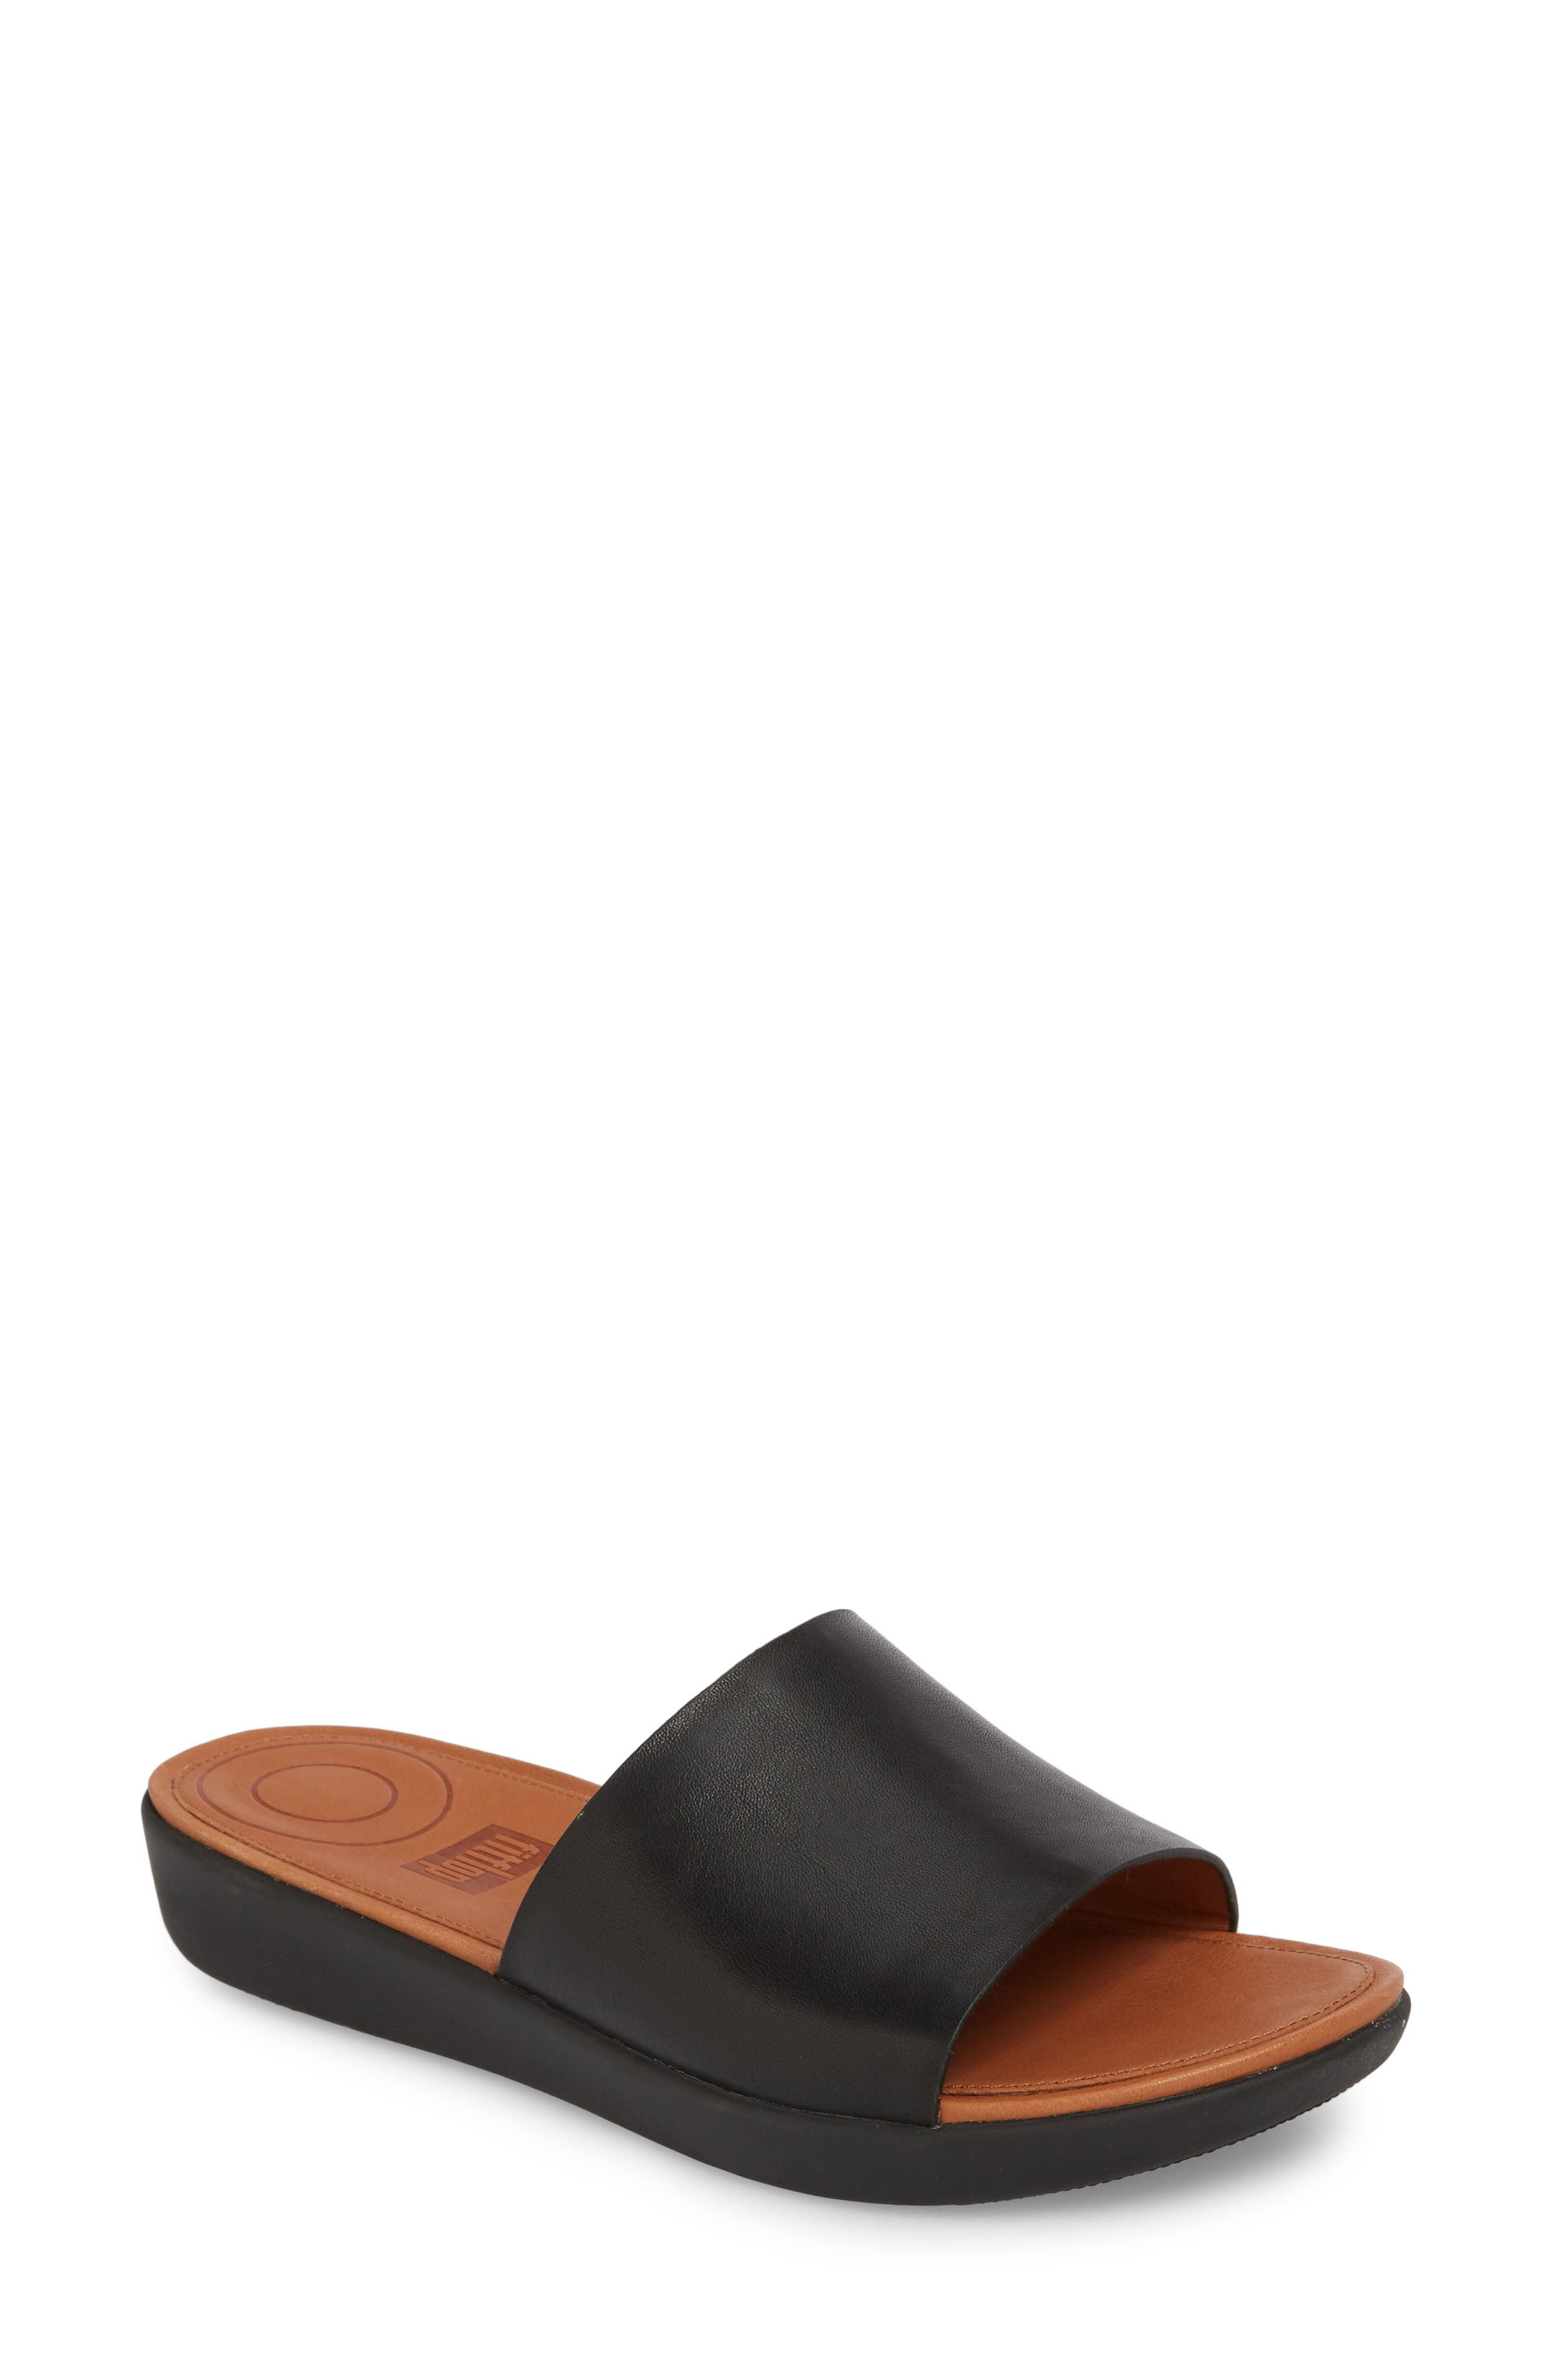 Sola Sandal,                             Main thumbnail 1, color,                             BLACK LEATHER